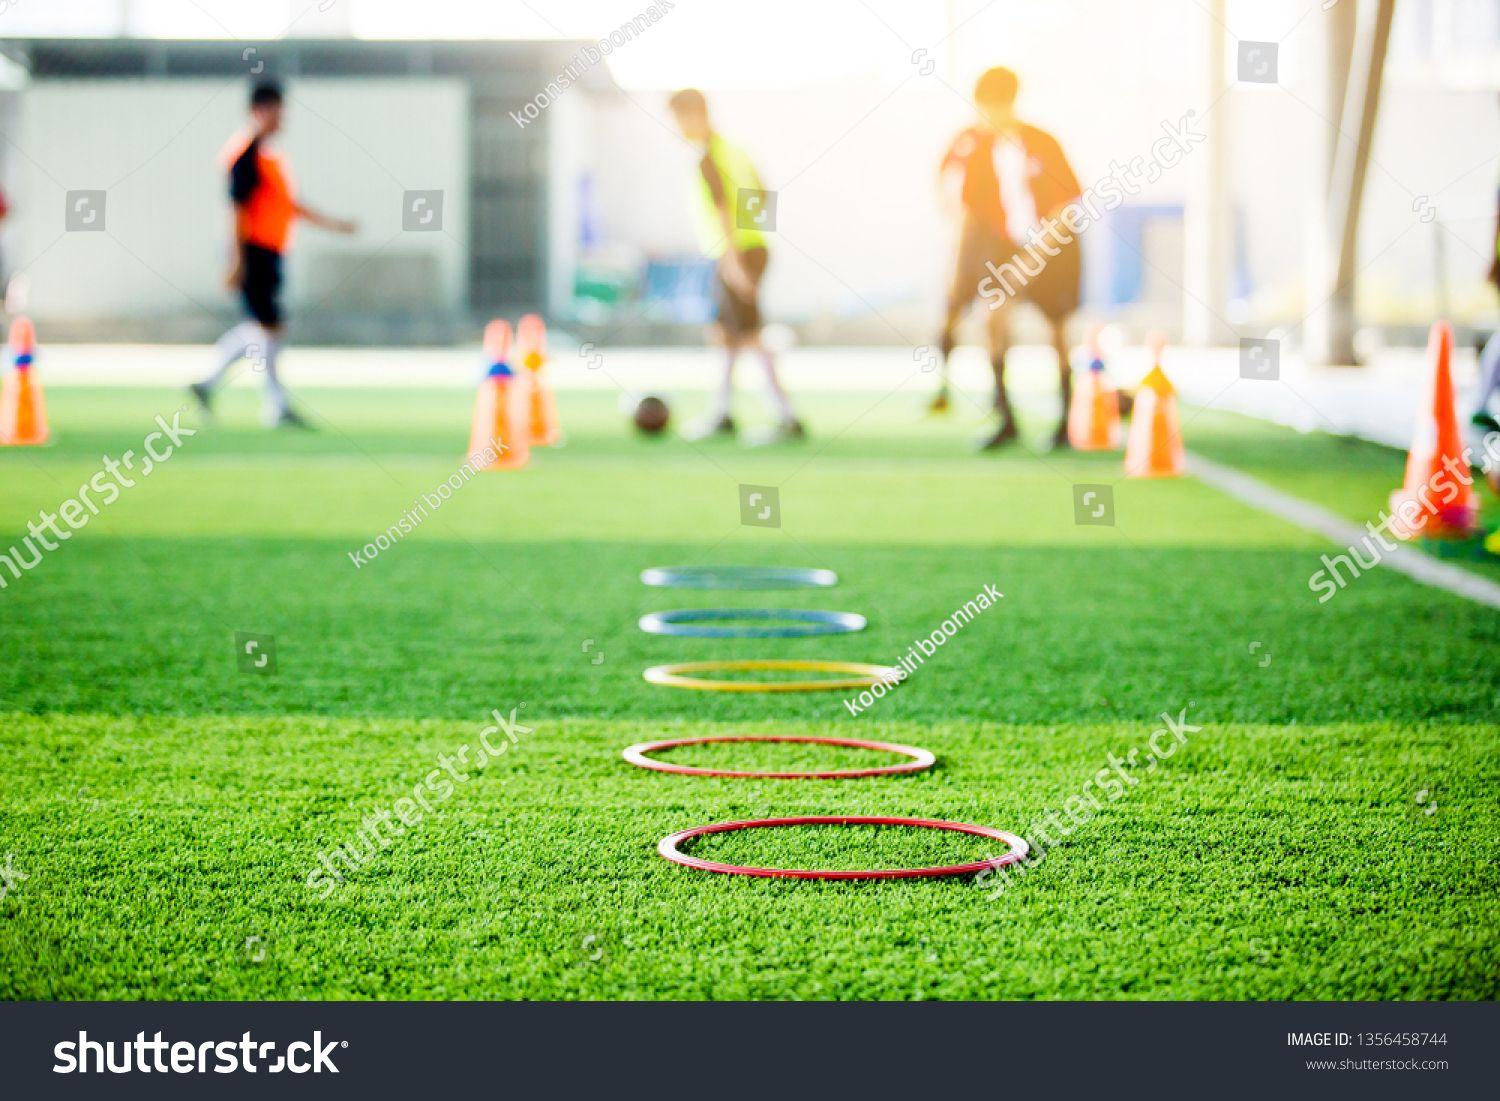 Agility Fitness And Power Training Equipment Diamond Football Soccer Training Soccer Training Equipment Football Workouts